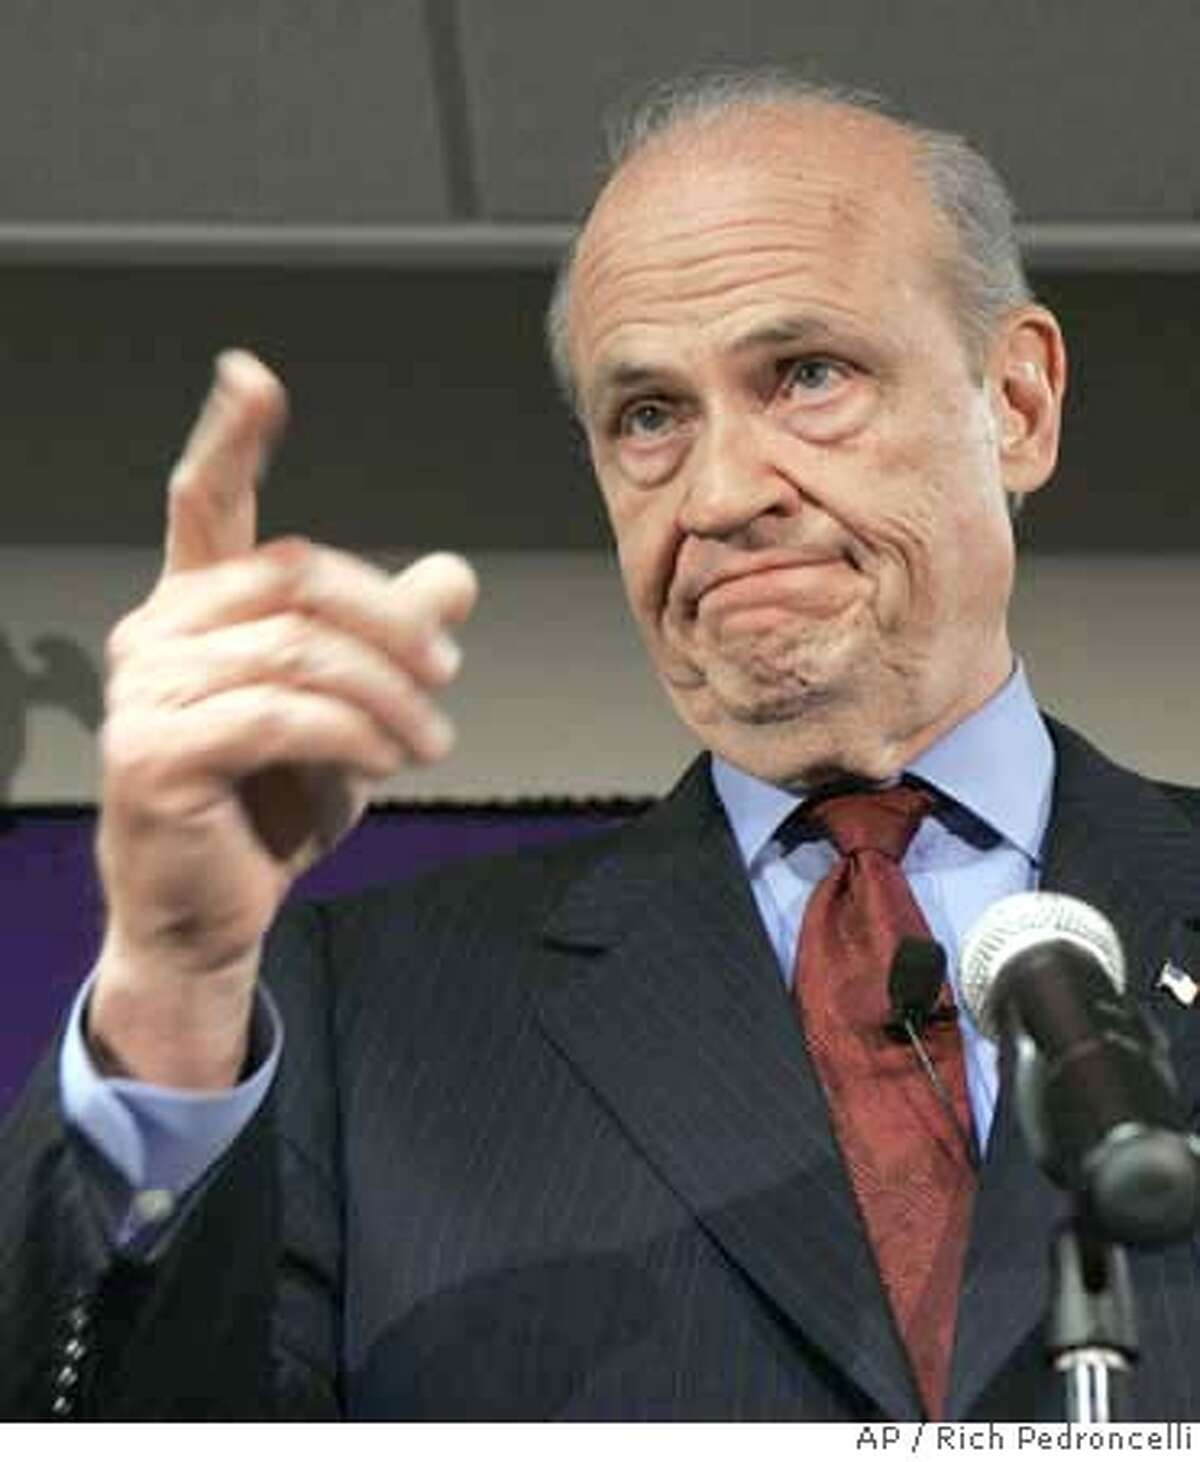 Republican presidential hopeful and former U.S. Sen. Fred Thompson, of Tennessee, takes another question during a news conference where he received the endorsement of several of California's Republican lawmakers, in Sacramento, Calif., Tuesday, Oct. 30, 2007. (AP Photo/Rich Pedroncelli)